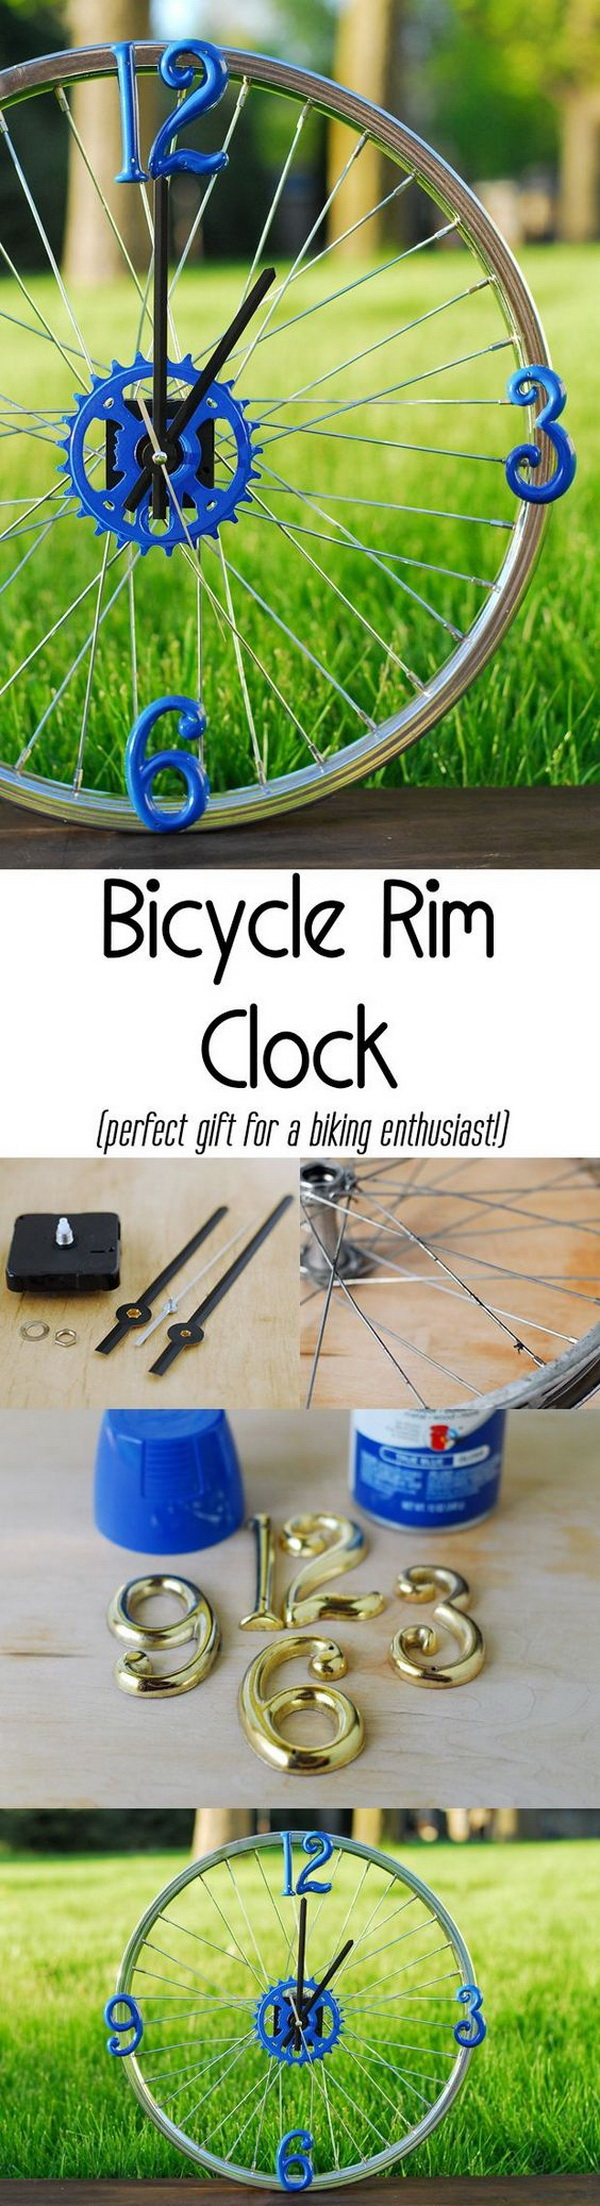 DIY Bicycle Rim Clock. The perfect gift for dad who is a biking enthusiast!